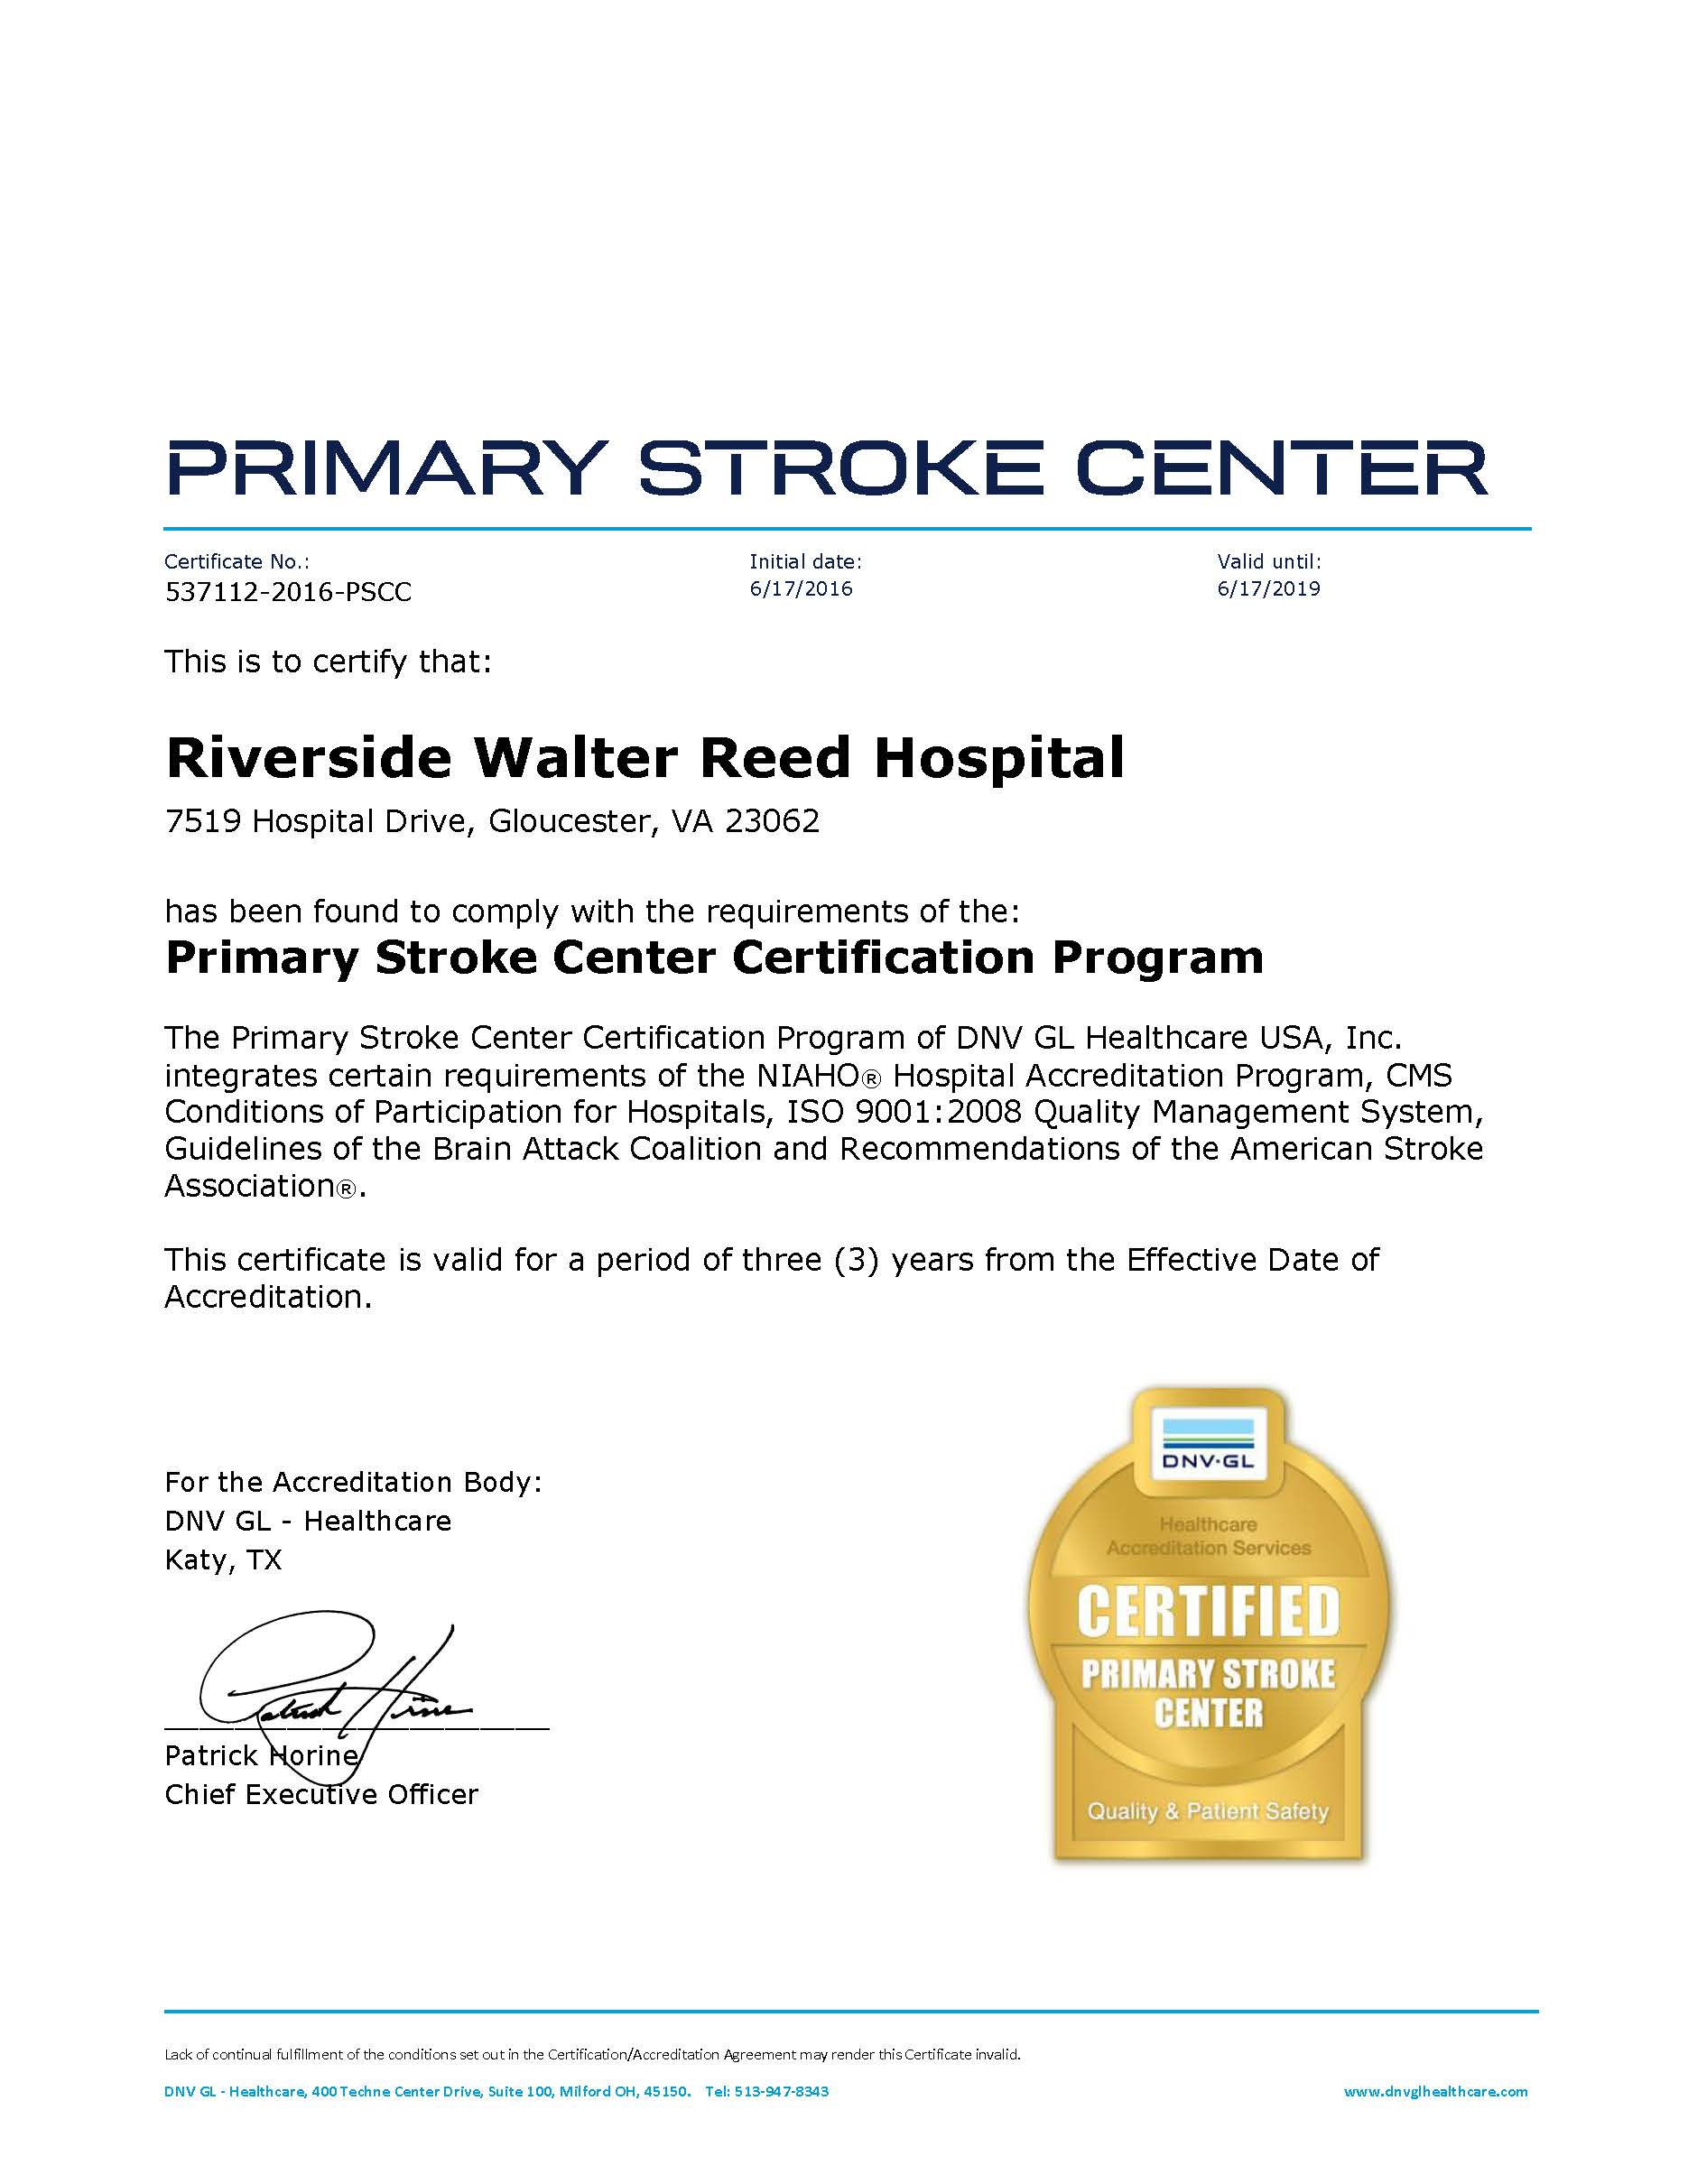 2016 Riverside Walter Reed Hospital PSCC Certificate Page 1